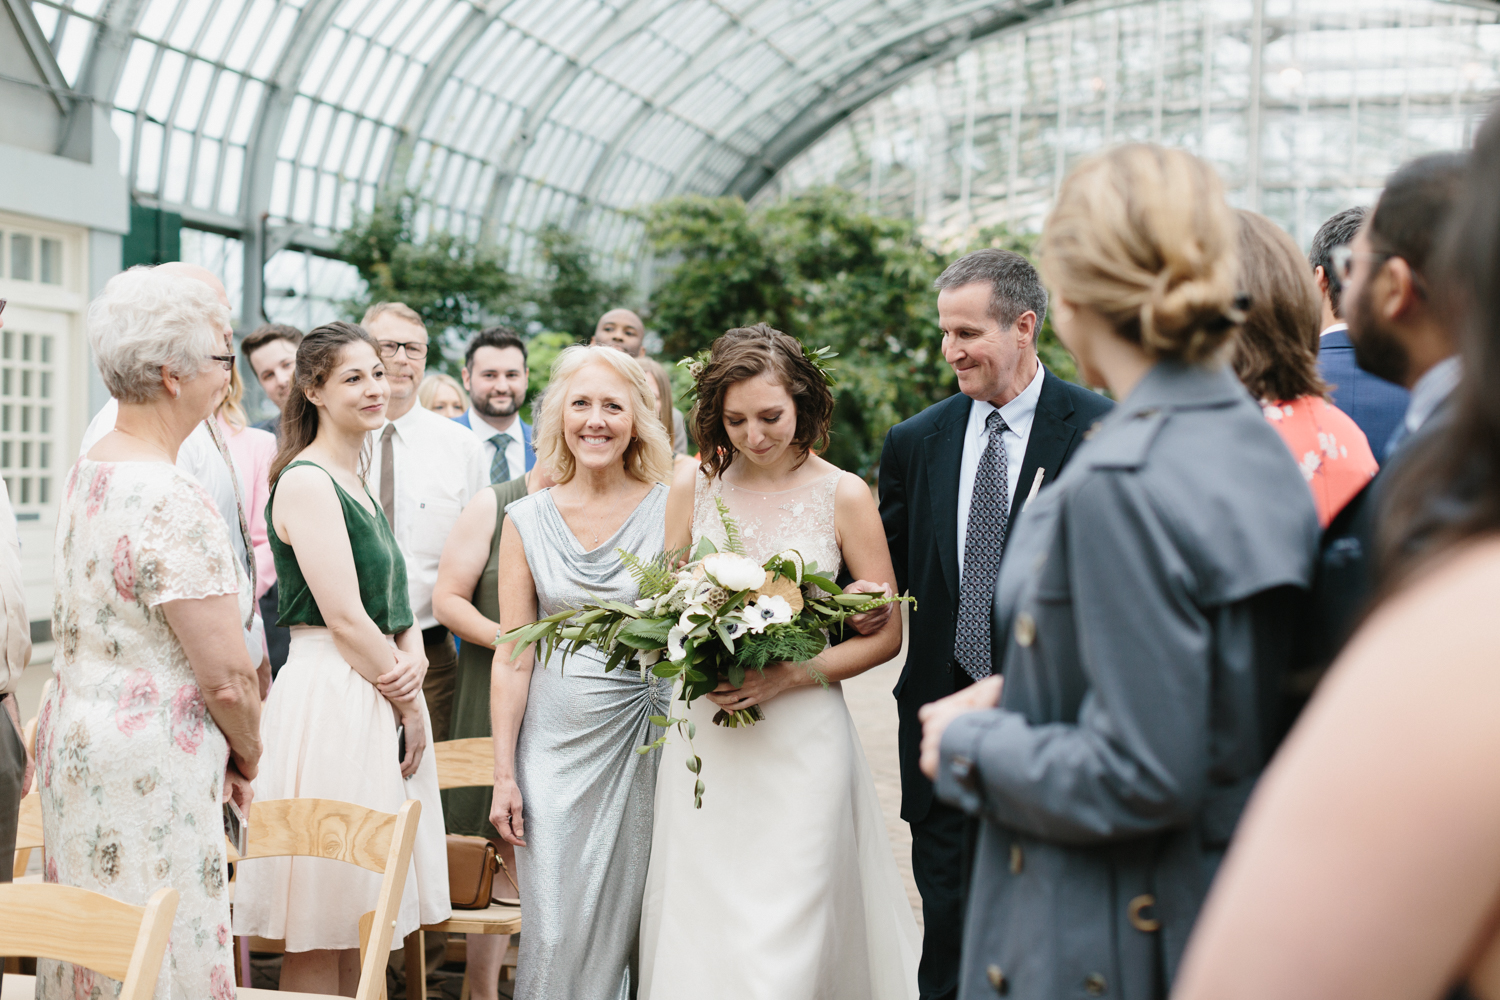 Chicago Garfield Park Conservatory Wedding by Northern Michigan Photographer Mae Stier-059.jpg